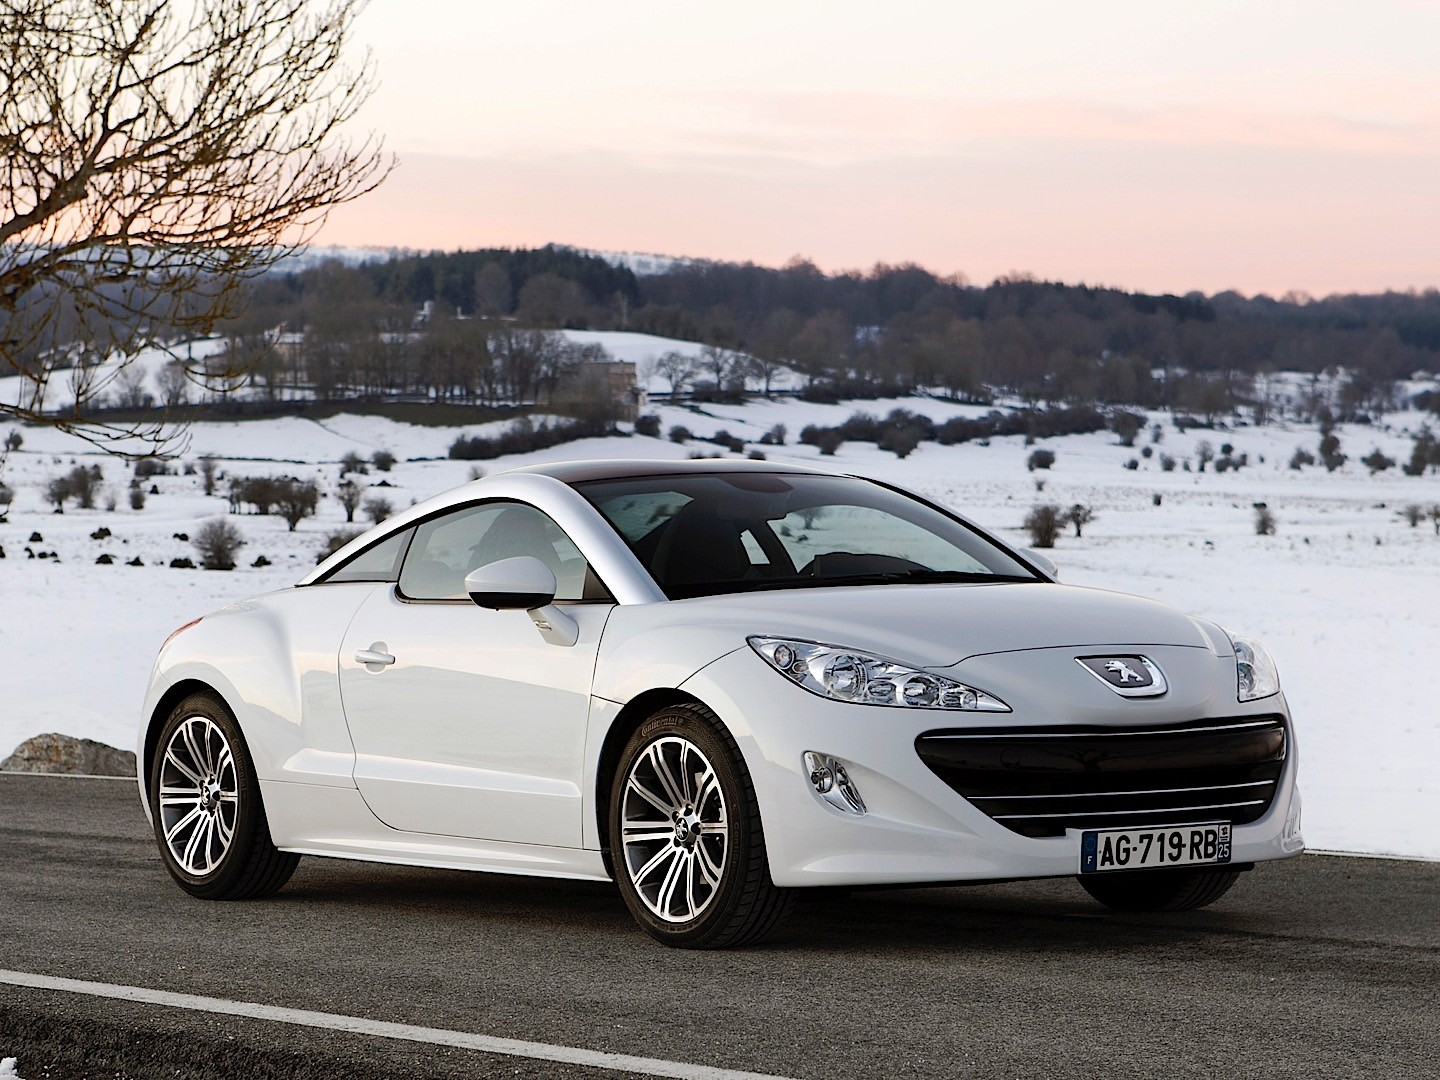 peugeot rcz specs 2009 2010 2011 2012 2013 autoevolution. Black Bedroom Furniture Sets. Home Design Ideas